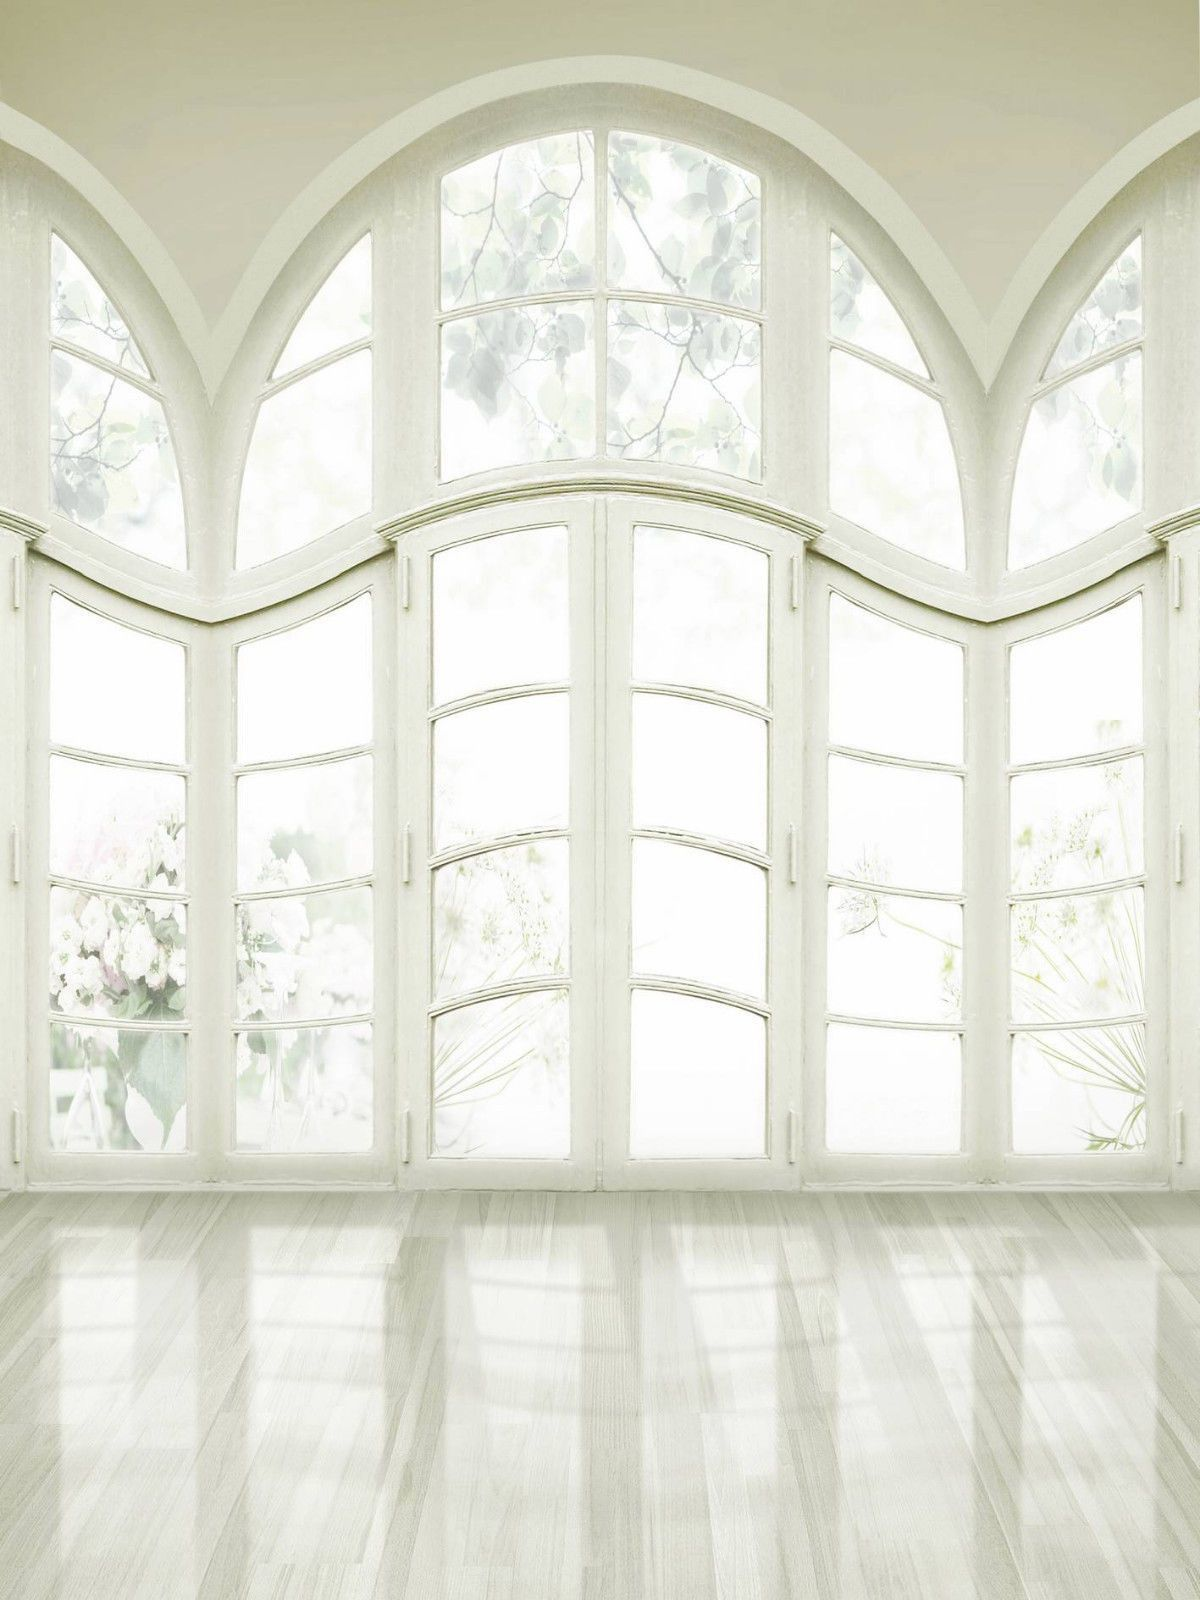 White Windows Wedding Photography Studio Backdrop 10x20